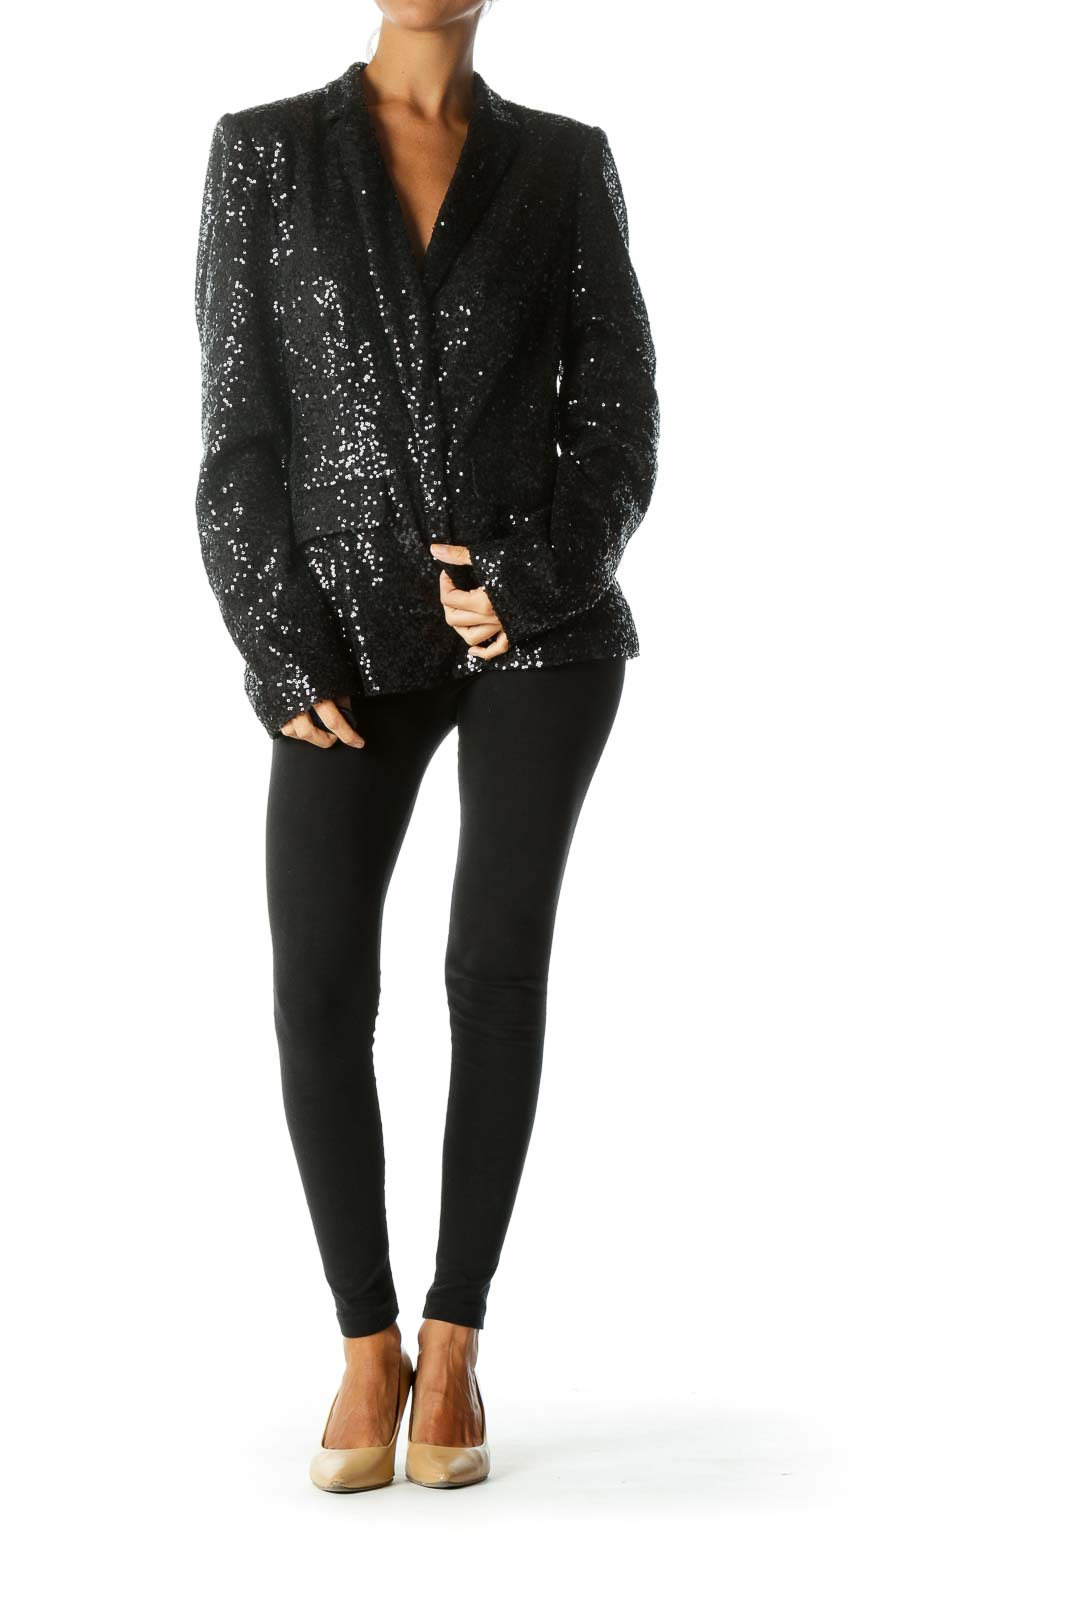 Black Sequined Body Collared Padded Shoulders Blazer